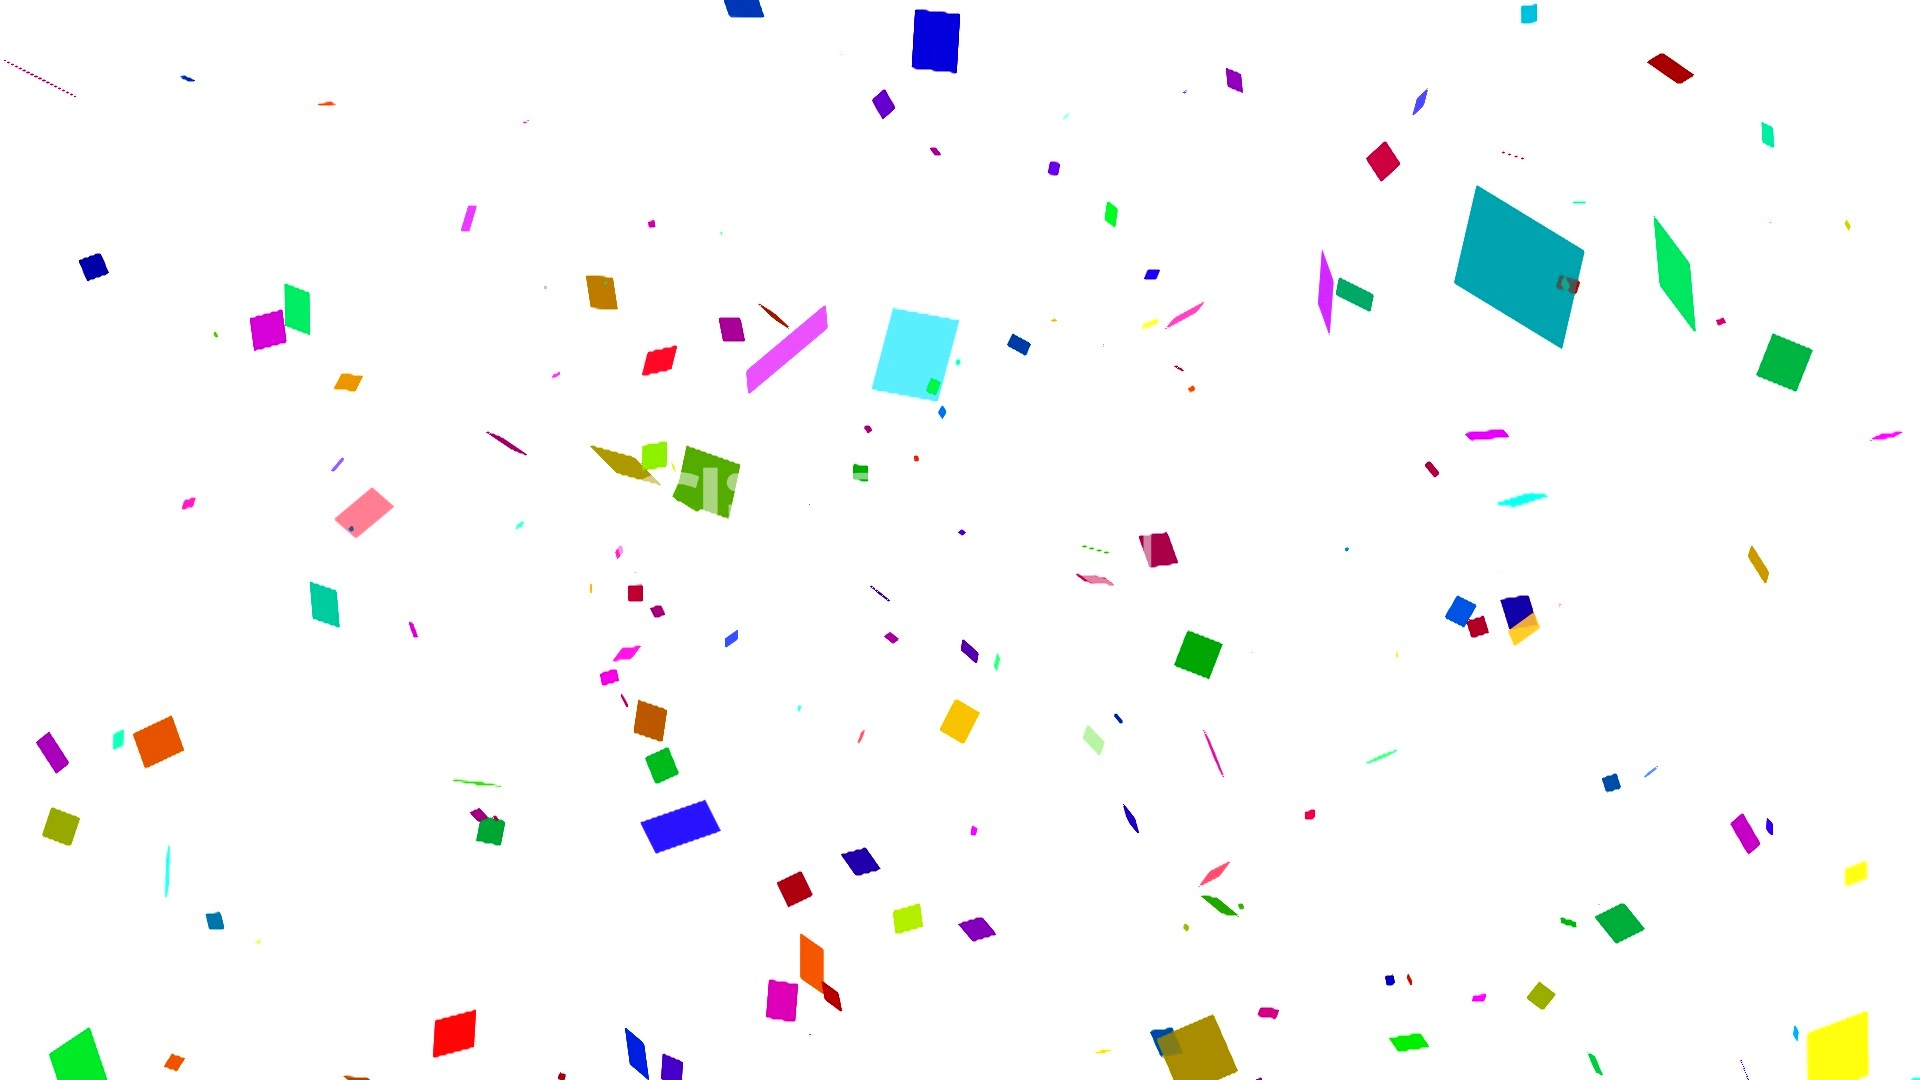 Happy Birthday Animated Wallpaper White Confetti Falling Royalty Free Video And Stock Footage